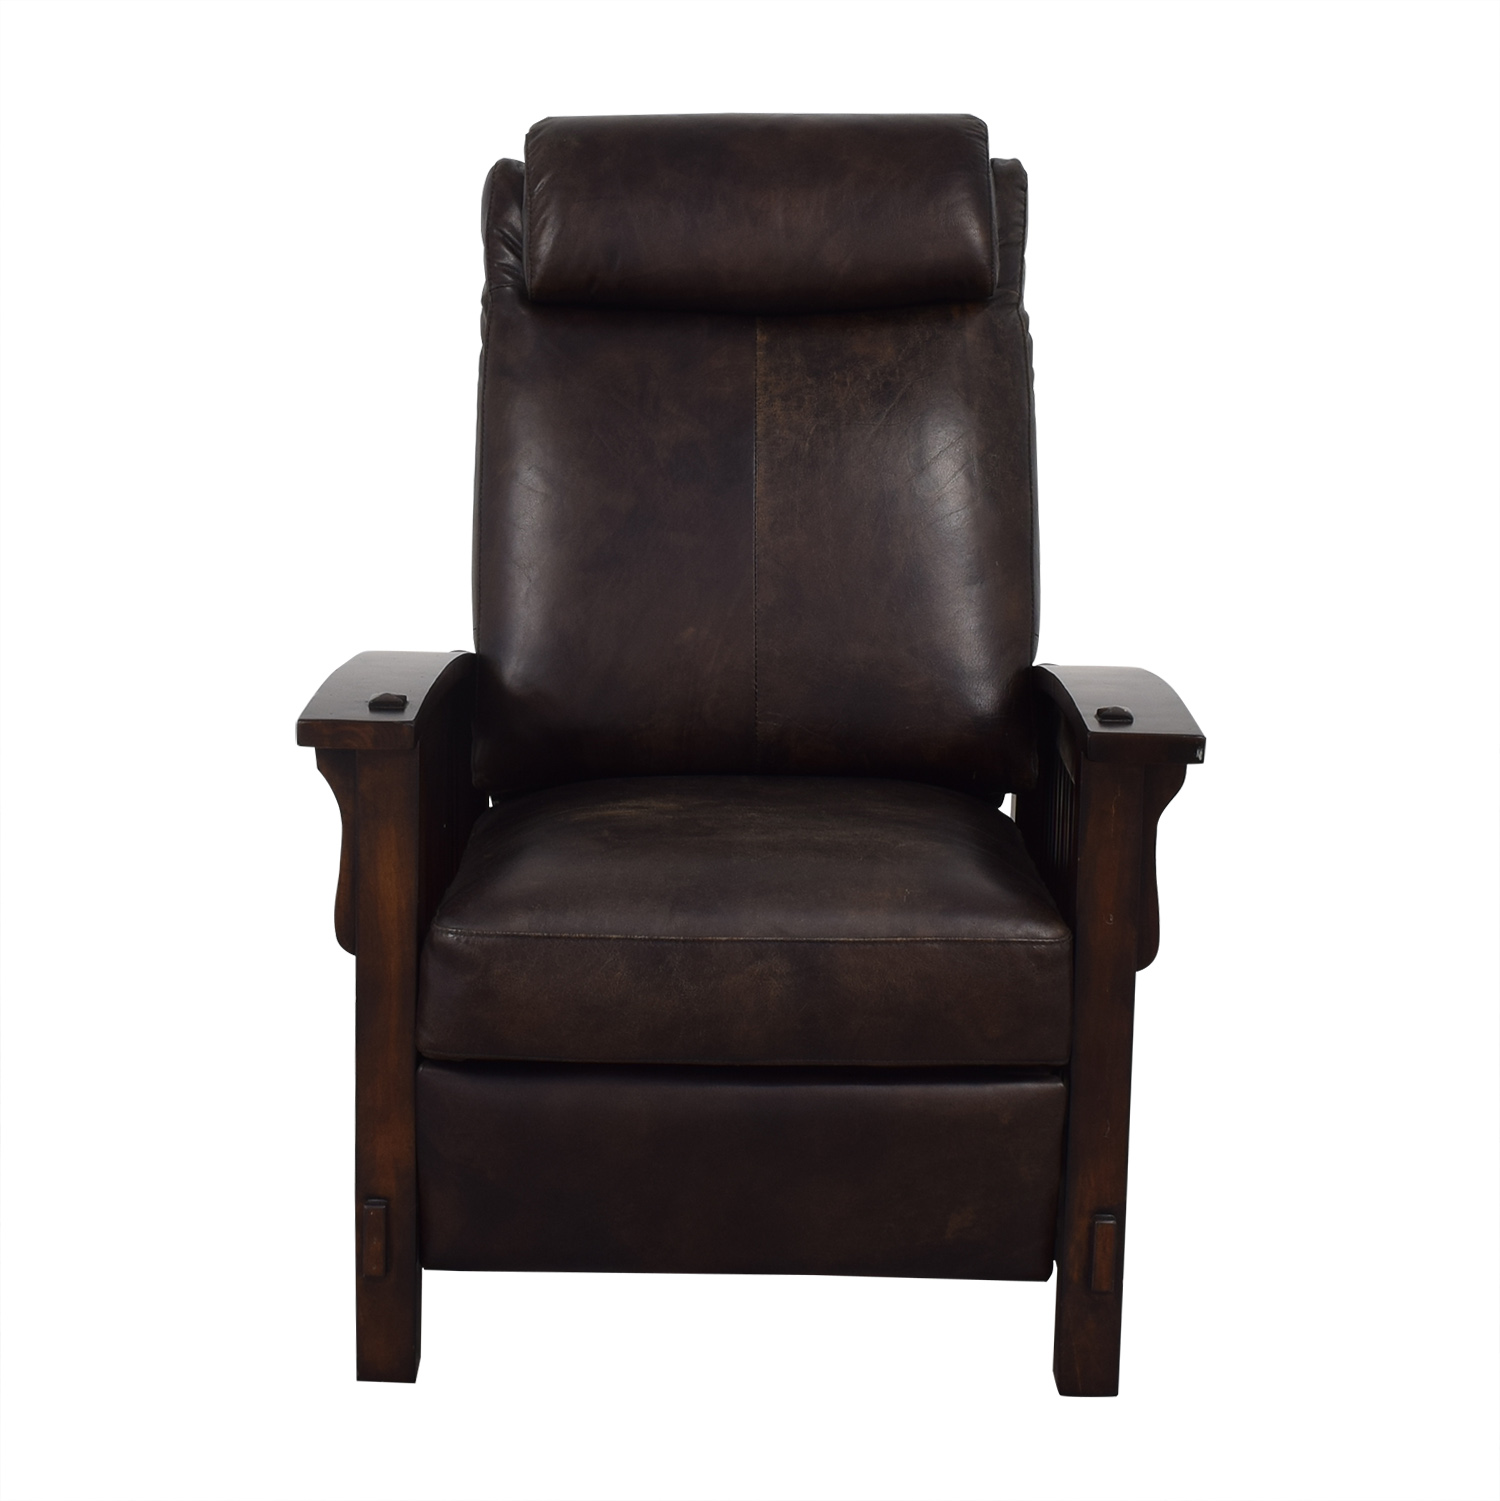 Recliner Chair with Wood Frame / Chairs